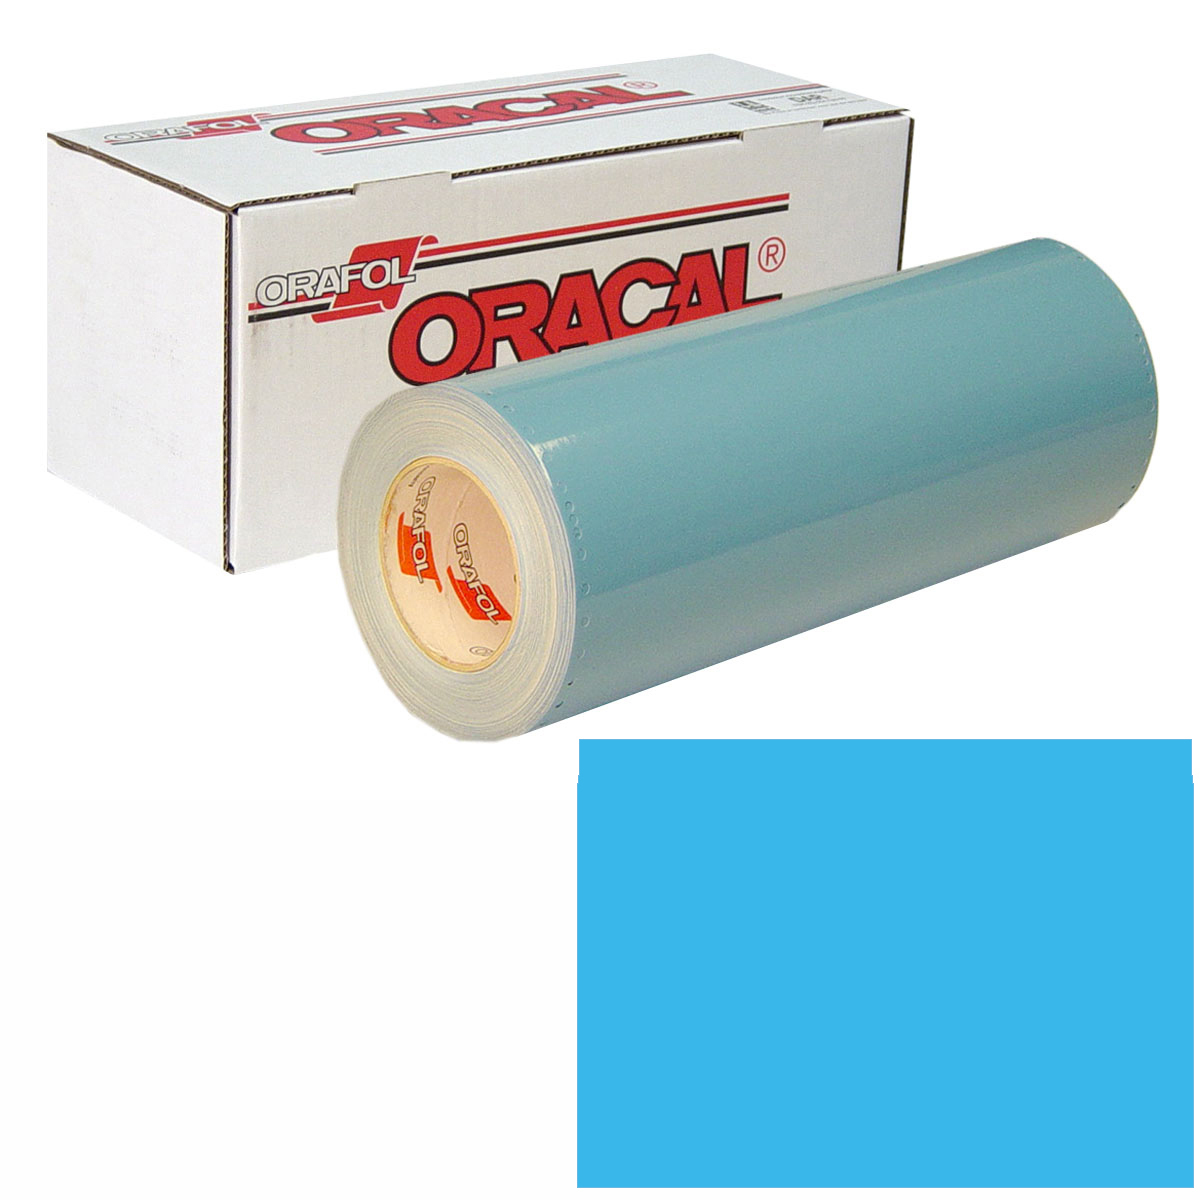 ORACAL 751 15in X 50yd 056 Ice Blue